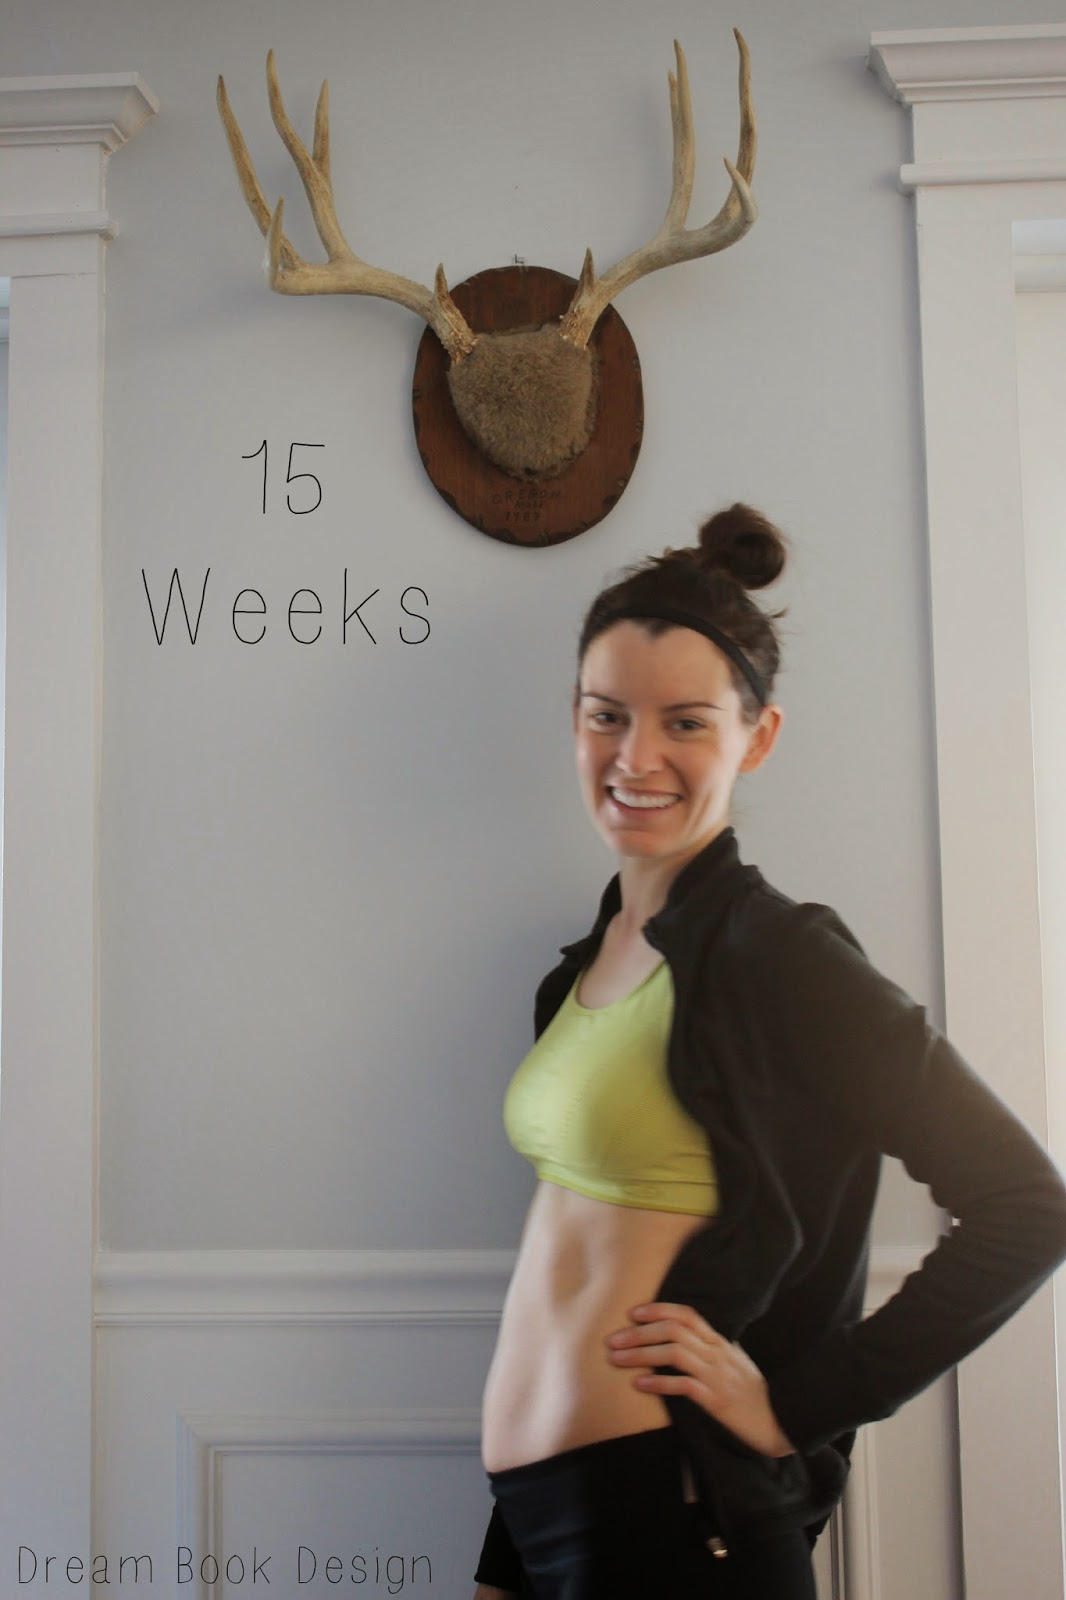 15 weeks pregnant bellies